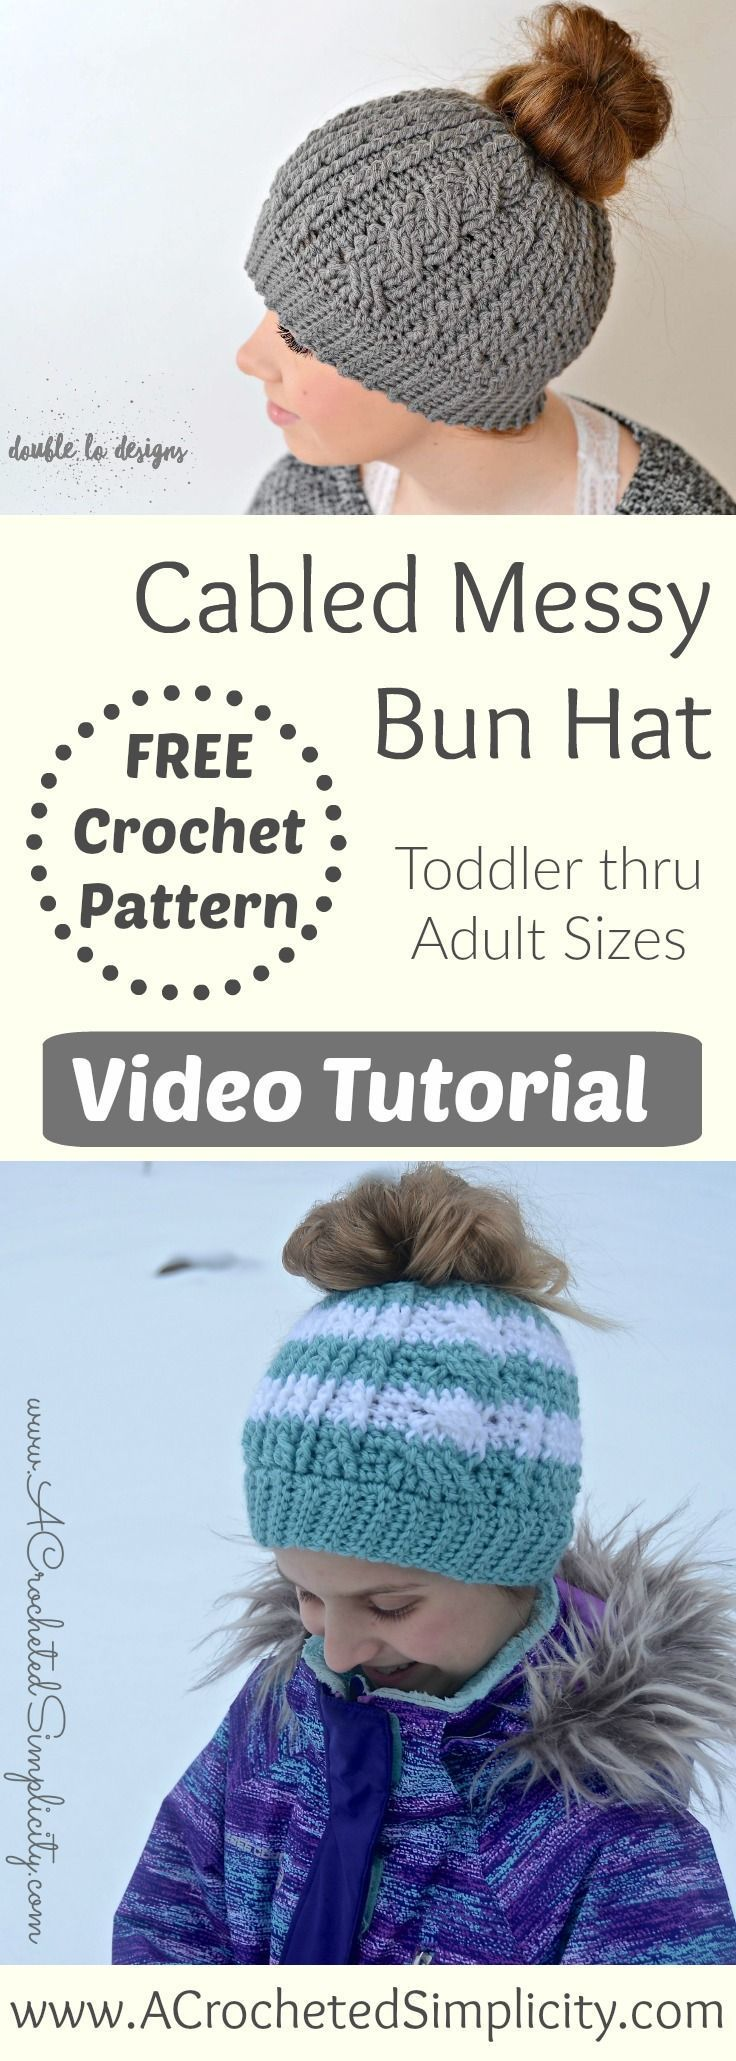 Free crochet pattern video tutorial cabled messy bun hat by a free crochet pattern video tutorial cabled messy bun hat by a crocheted simplicity baditri Image collections